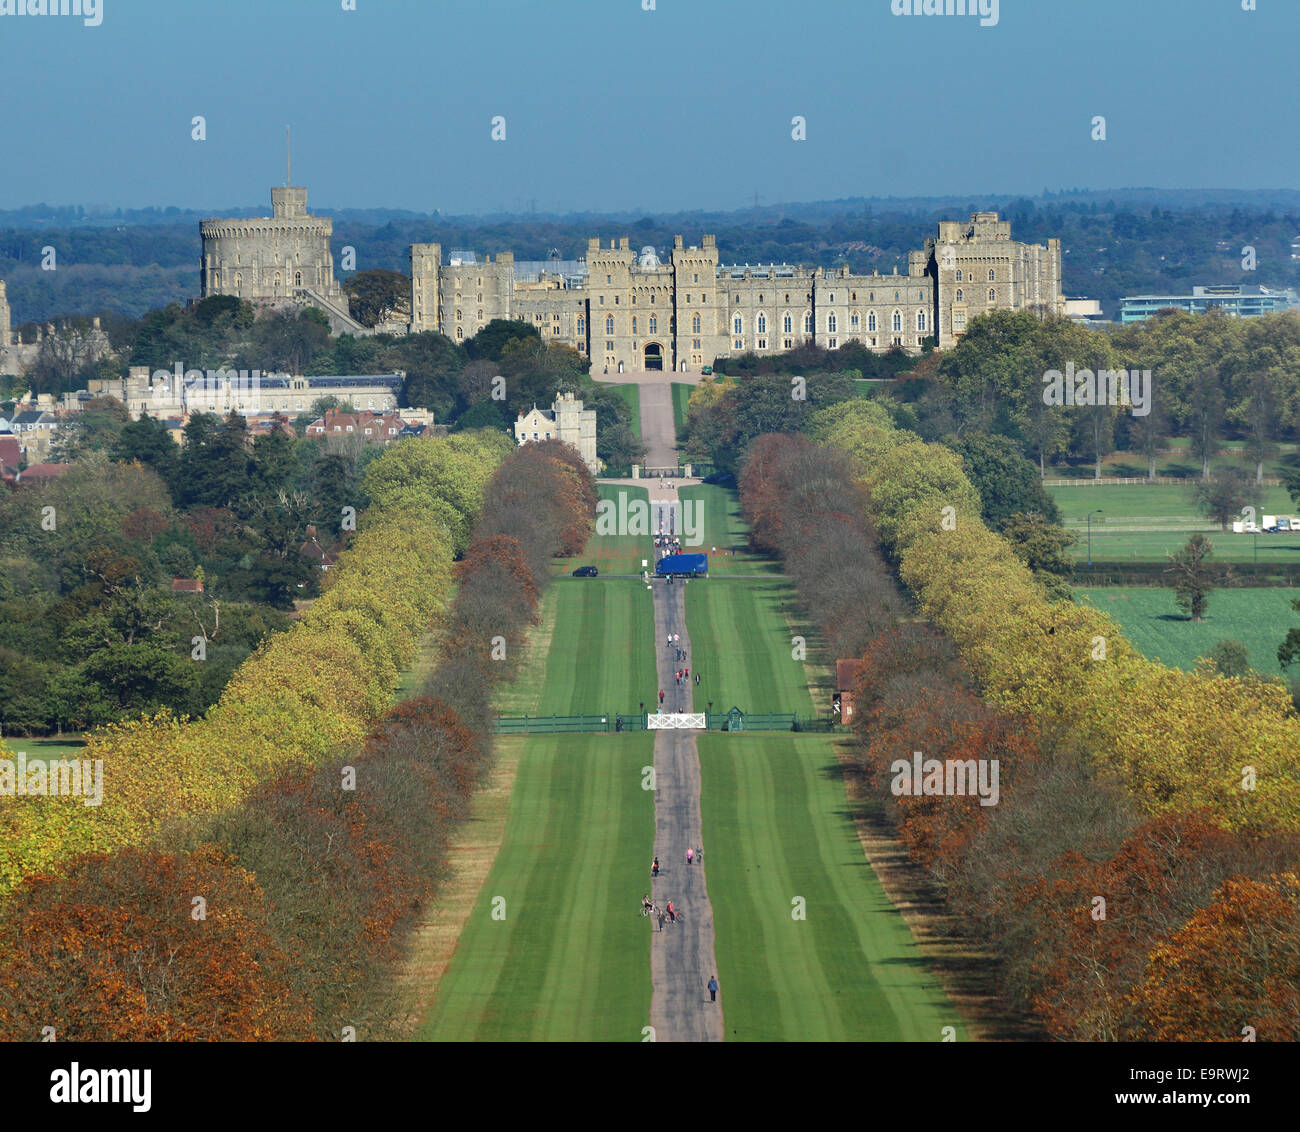 Windsor castle 241 tickets